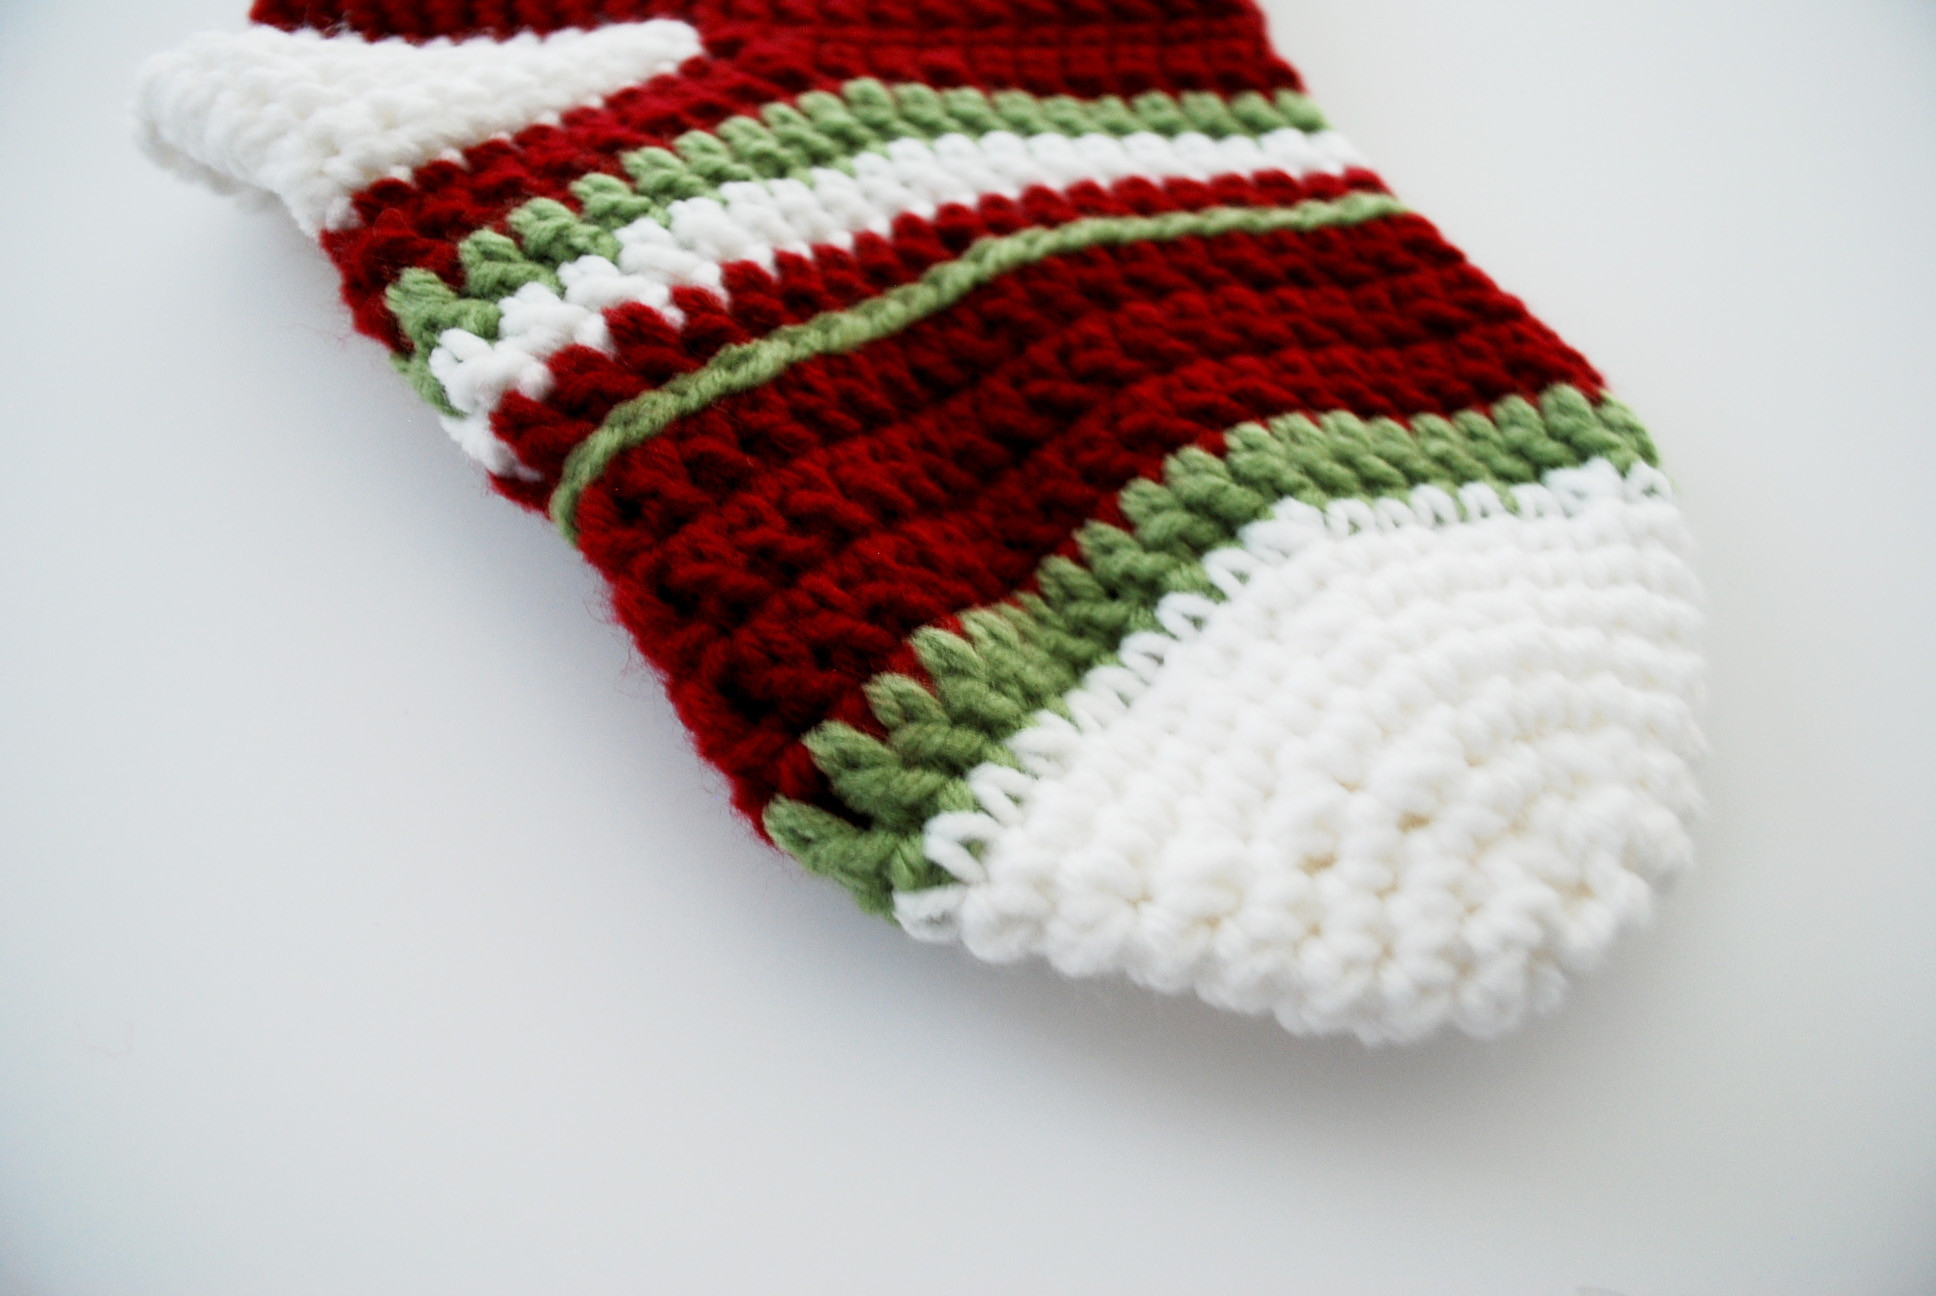 Crochet Christmas Stockings B hooked Crochet